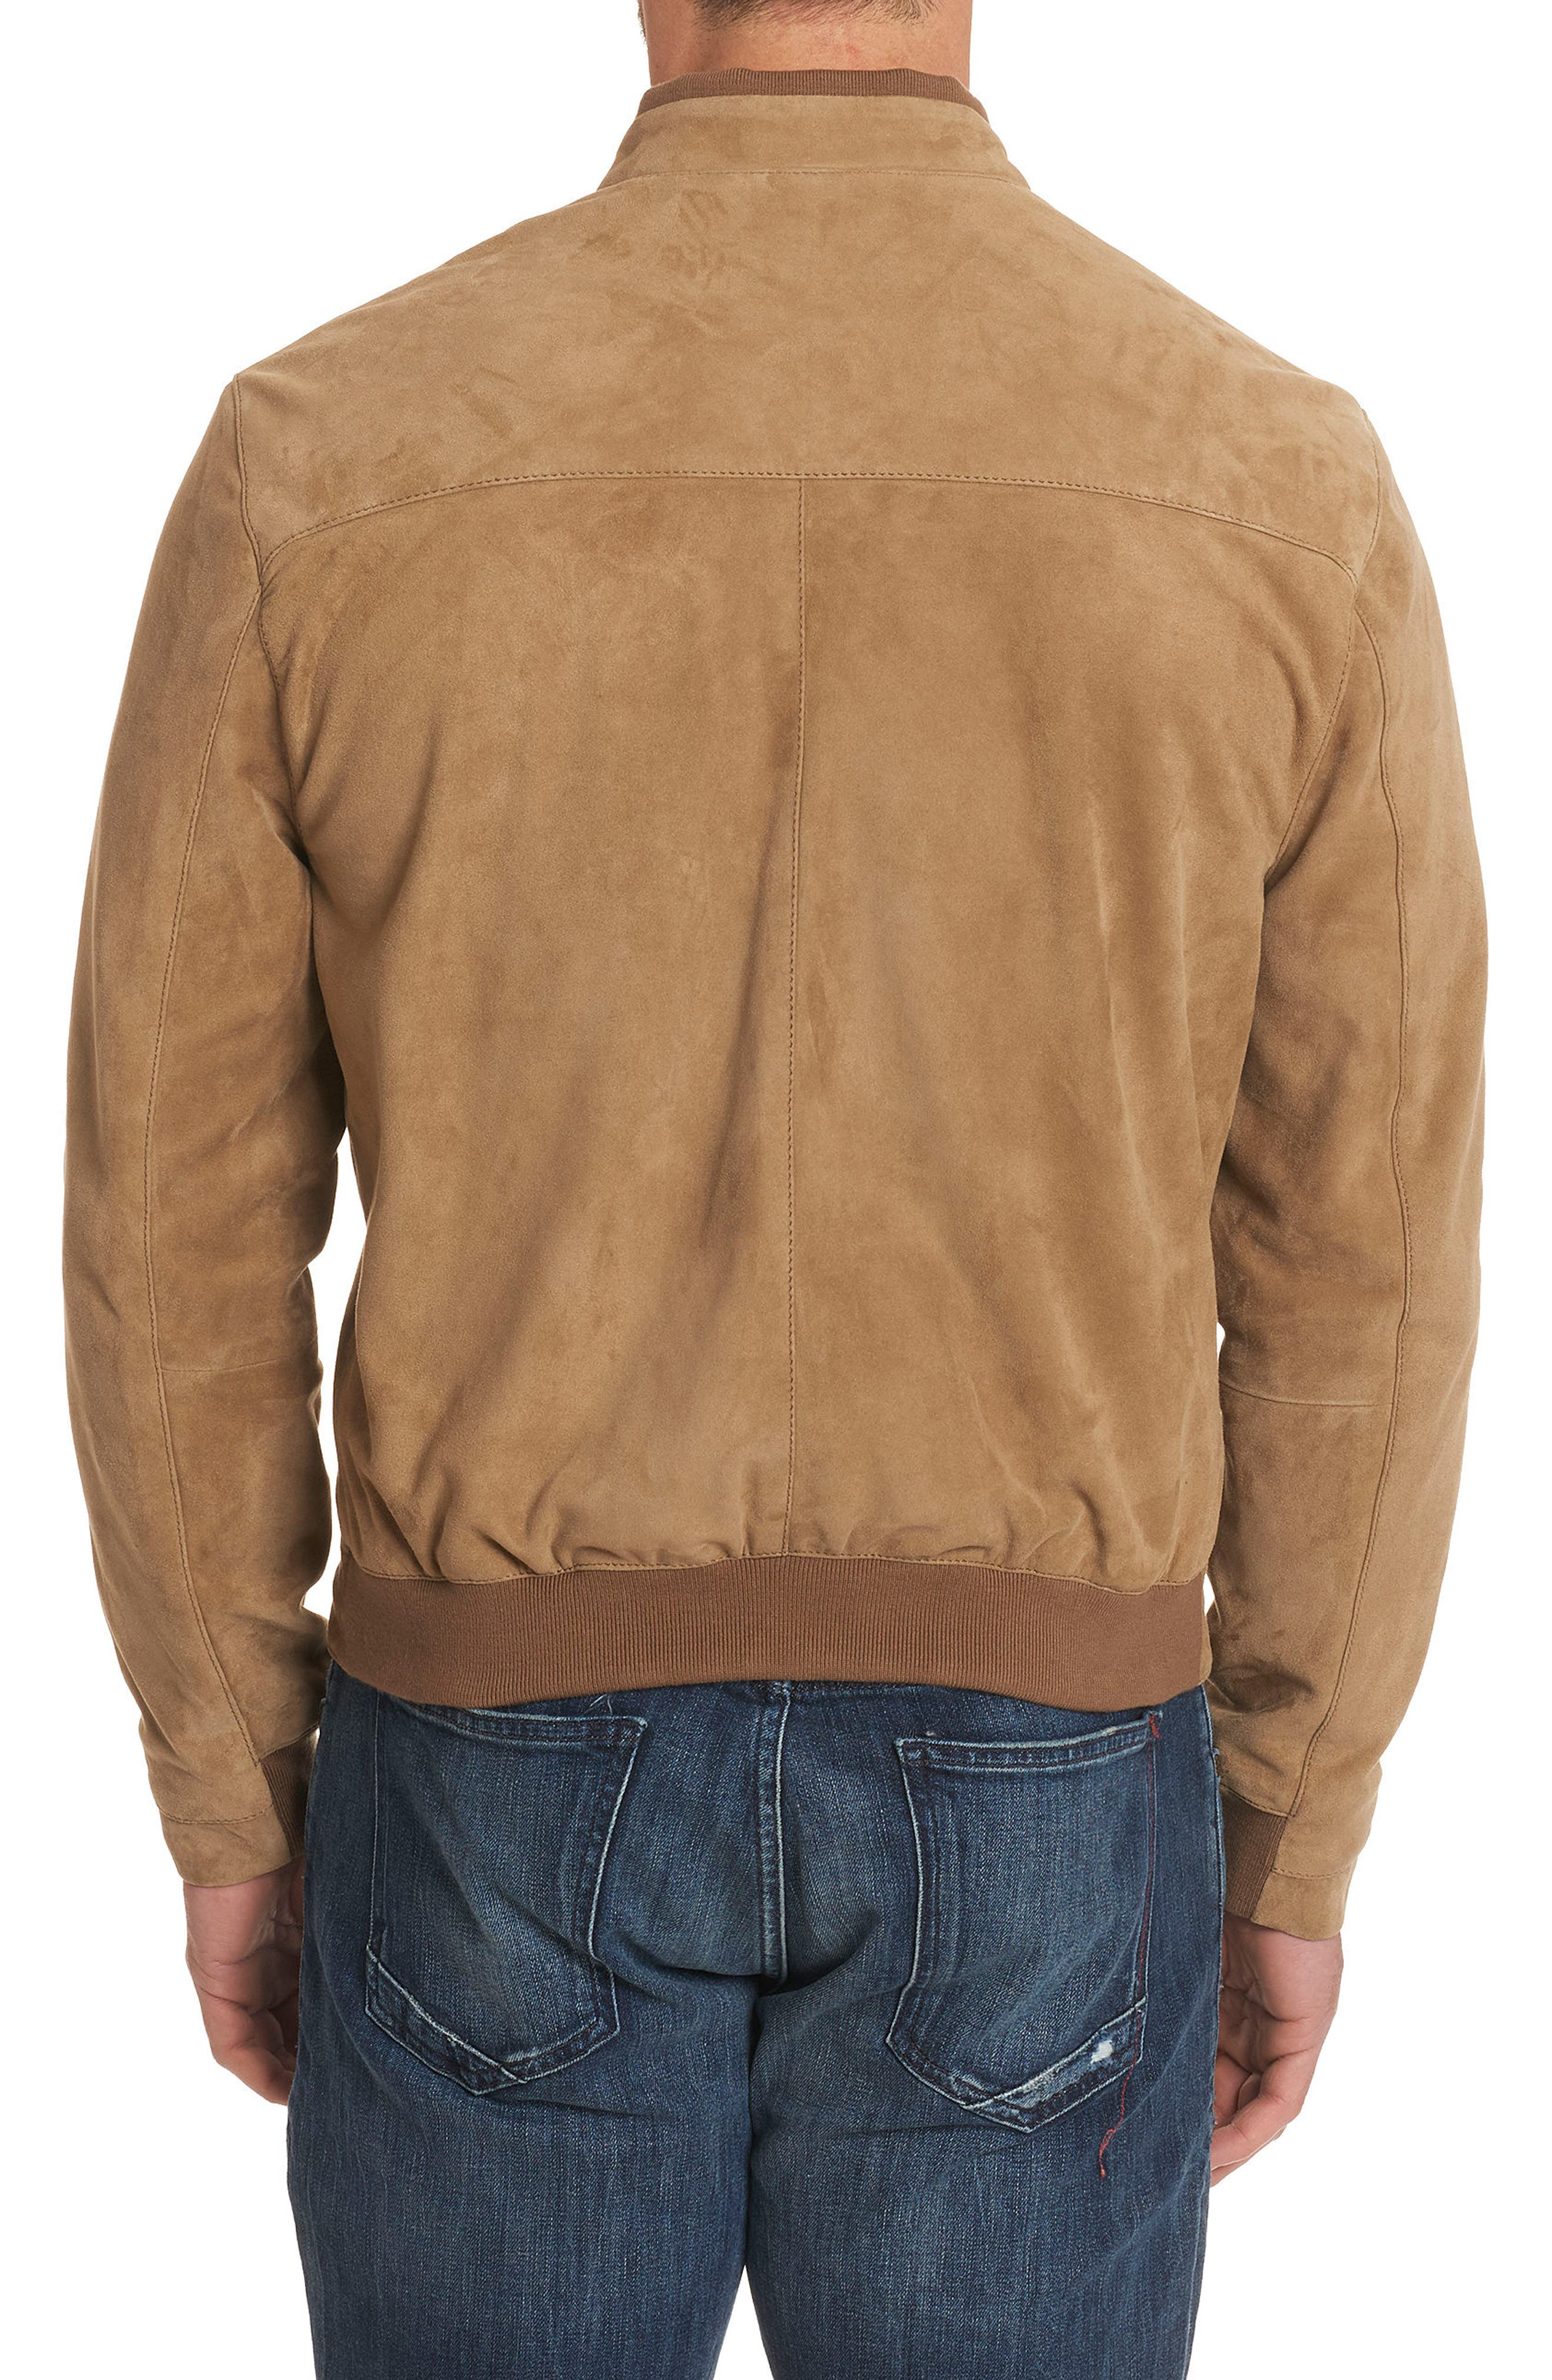 Ramos Suede Bomber Jacket,                             Alternate thumbnail 2, color,                             200